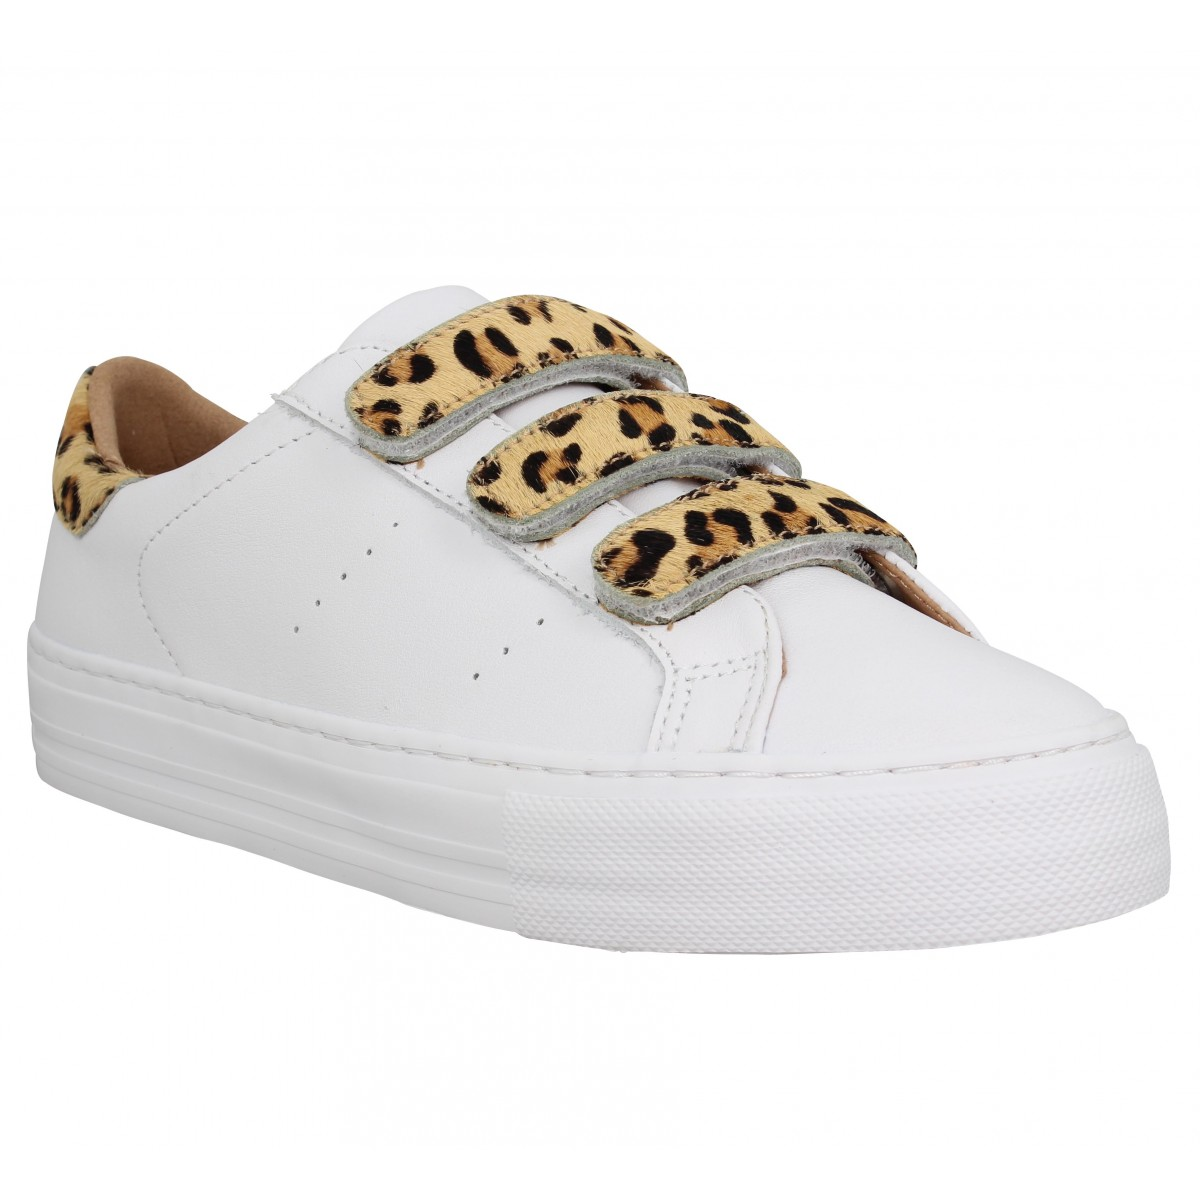 Baskets NO NAME Arcade Straps nappa Femme Blanc Leopard